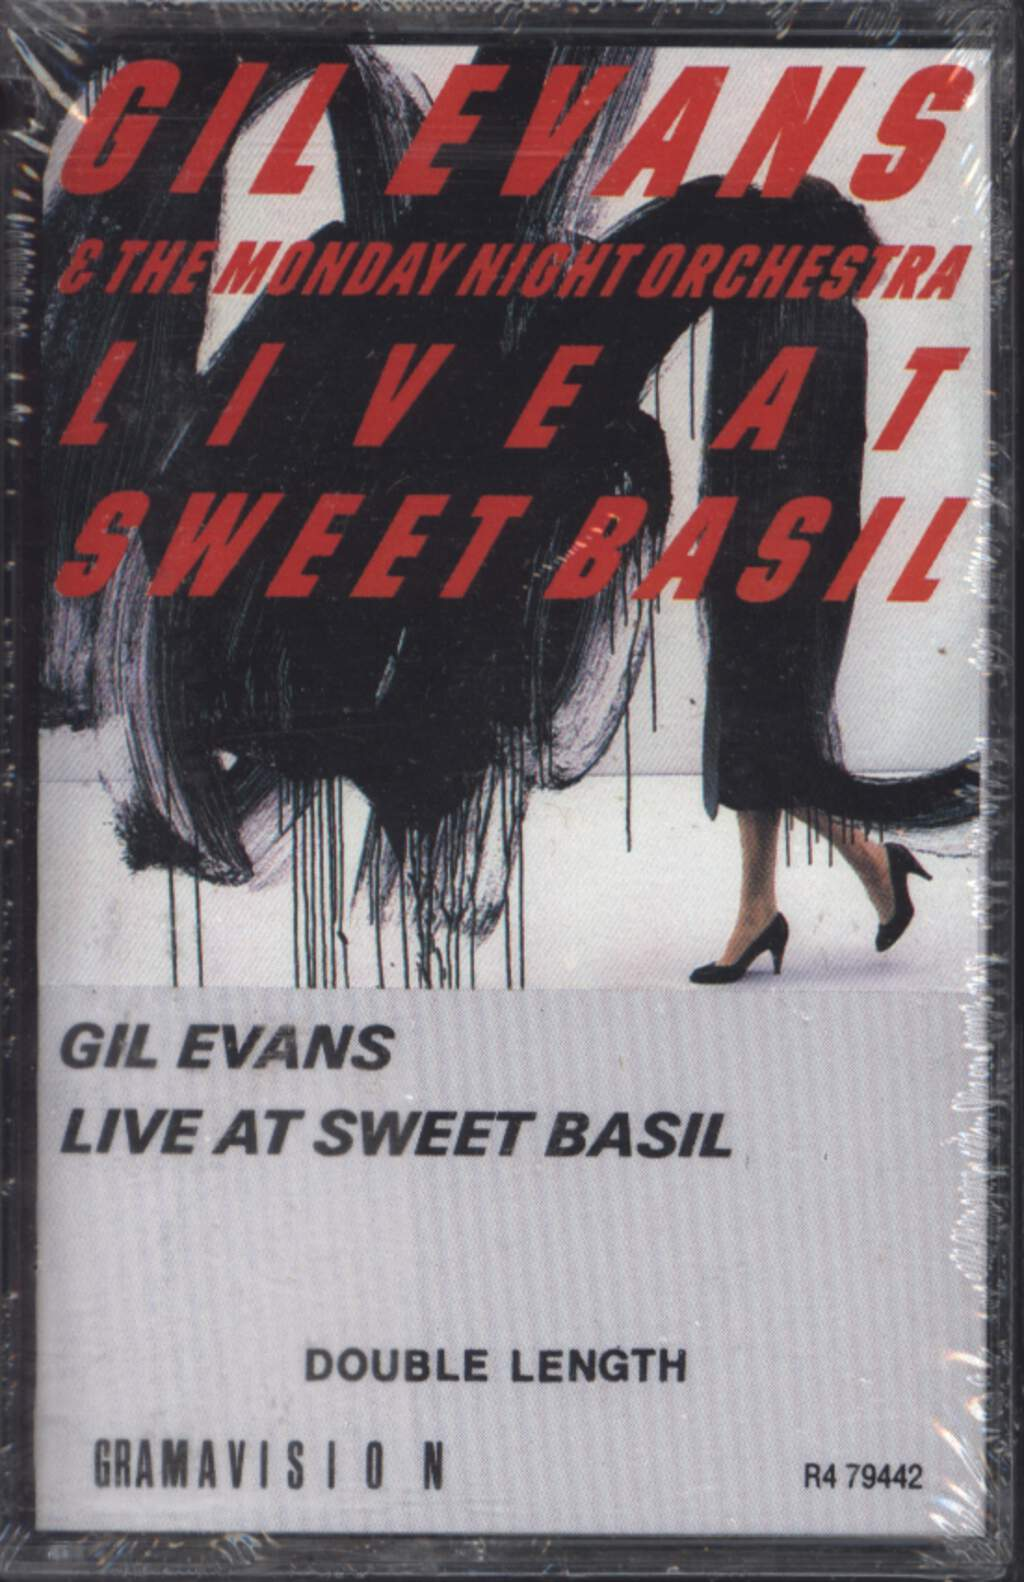 Gil Evans: Live At Sweet Basil, Compact Cassette